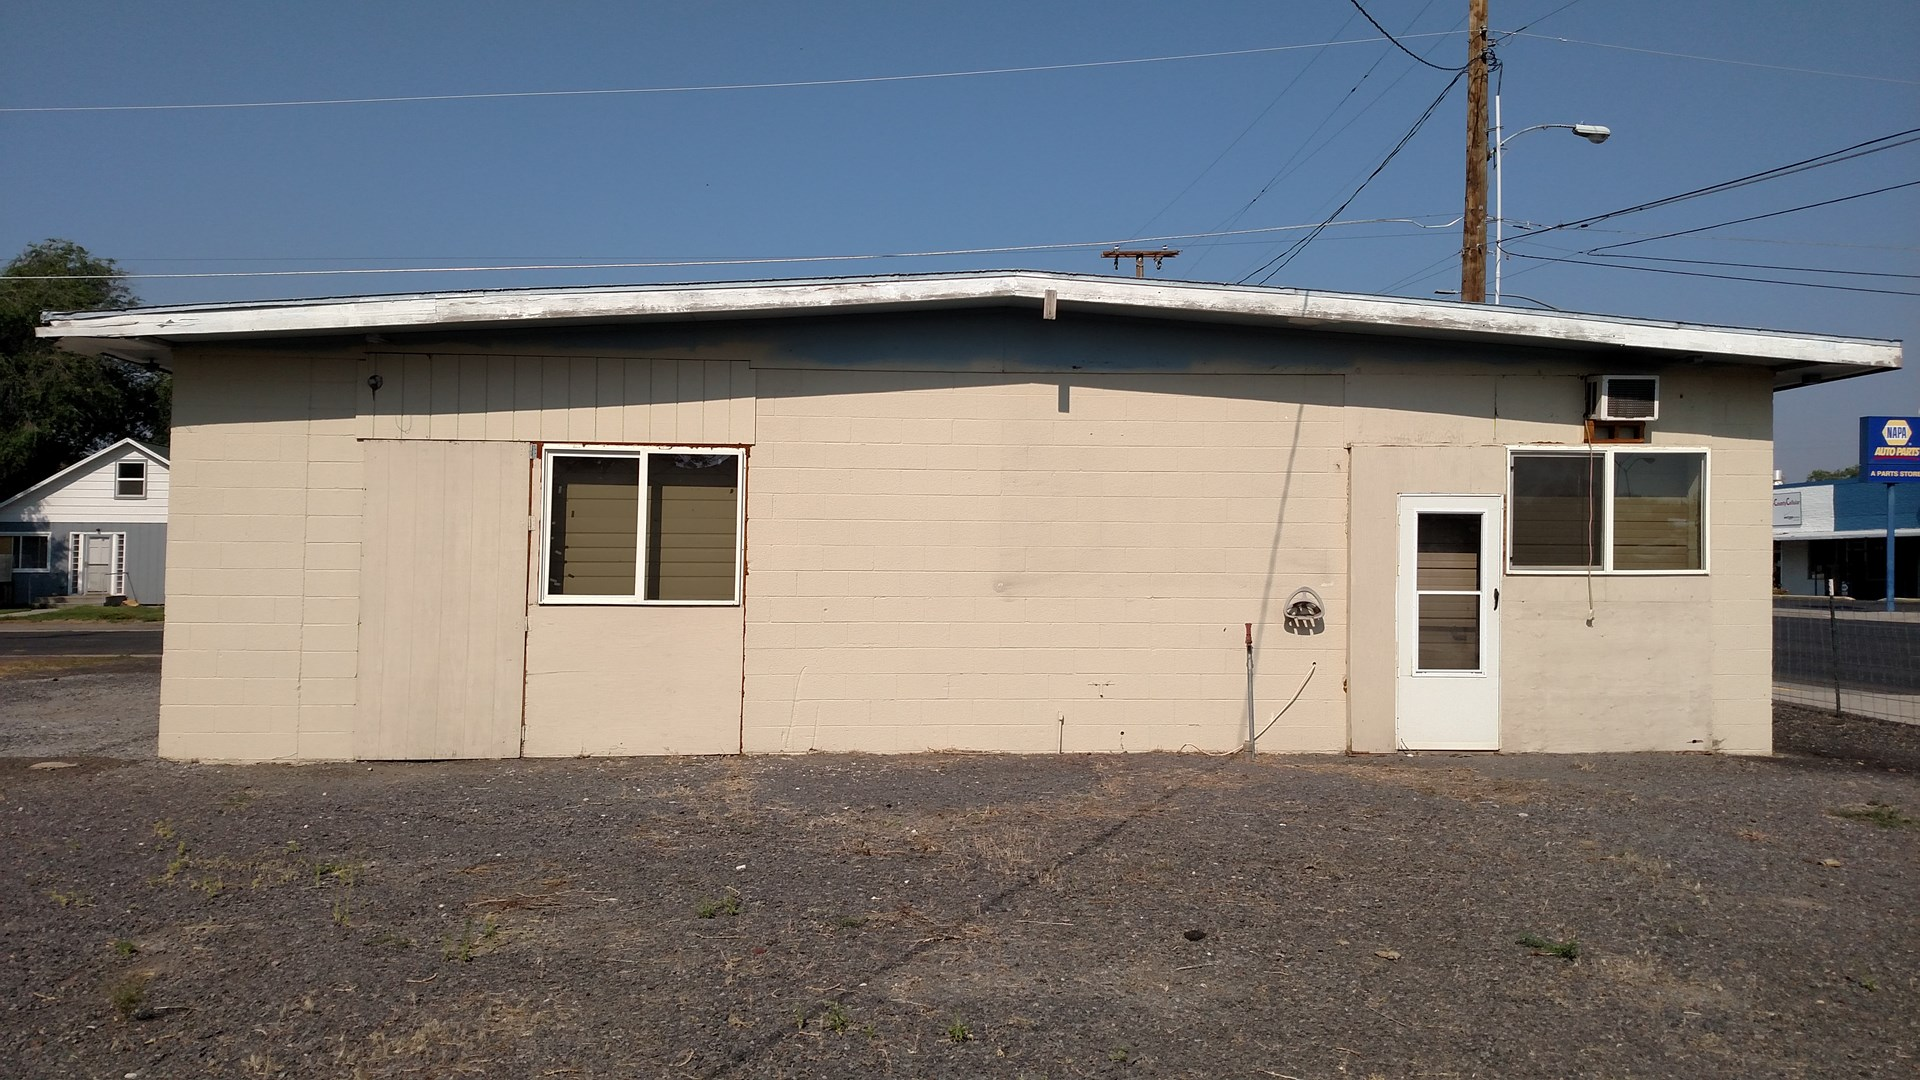 BURNS, OR - CINDER BLOCK BUILDING-3 LARGE ROOMS & AN OFFICE